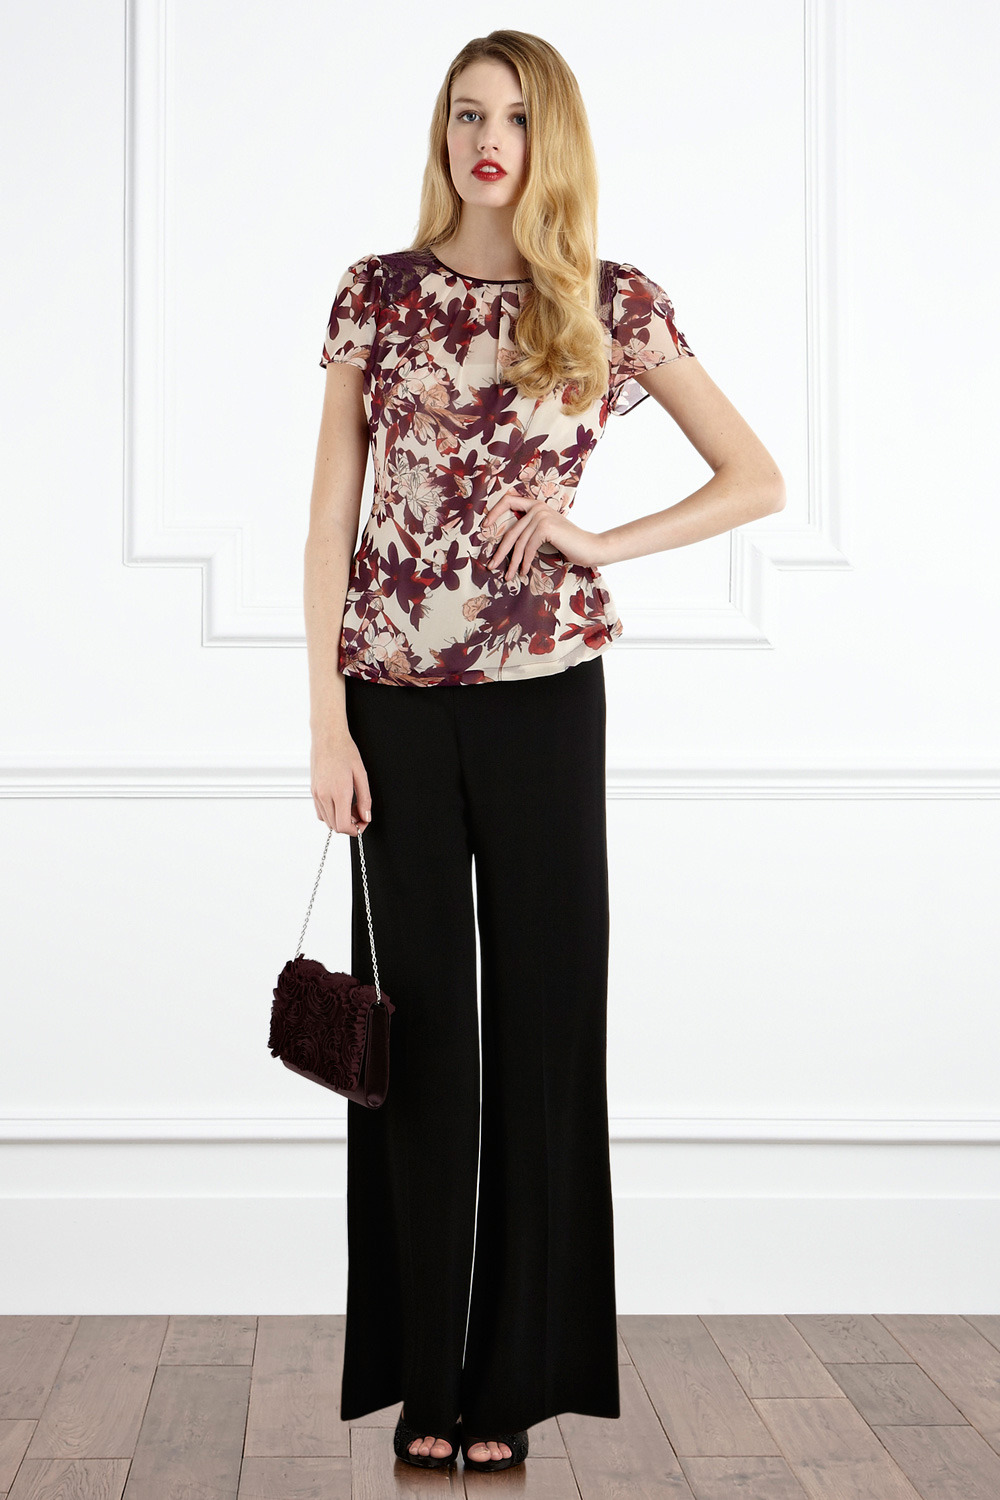 Gwenn Blouse Ss - neckline: round neck; pattern: heavily patterned, floral - busy, florals, patterned/print; style: blouse; occasions: evening, work; length: standard; trends: red, prints; fibres: polyester/polyamide - 100%; fit: tailored/fitted; back detail: keyhole/peephole detail at back; predominant colour: multicoloured; sleeve length: short sleeve; sleeve style: standard; pattern type: fabric; pattern size: big &amp; busy